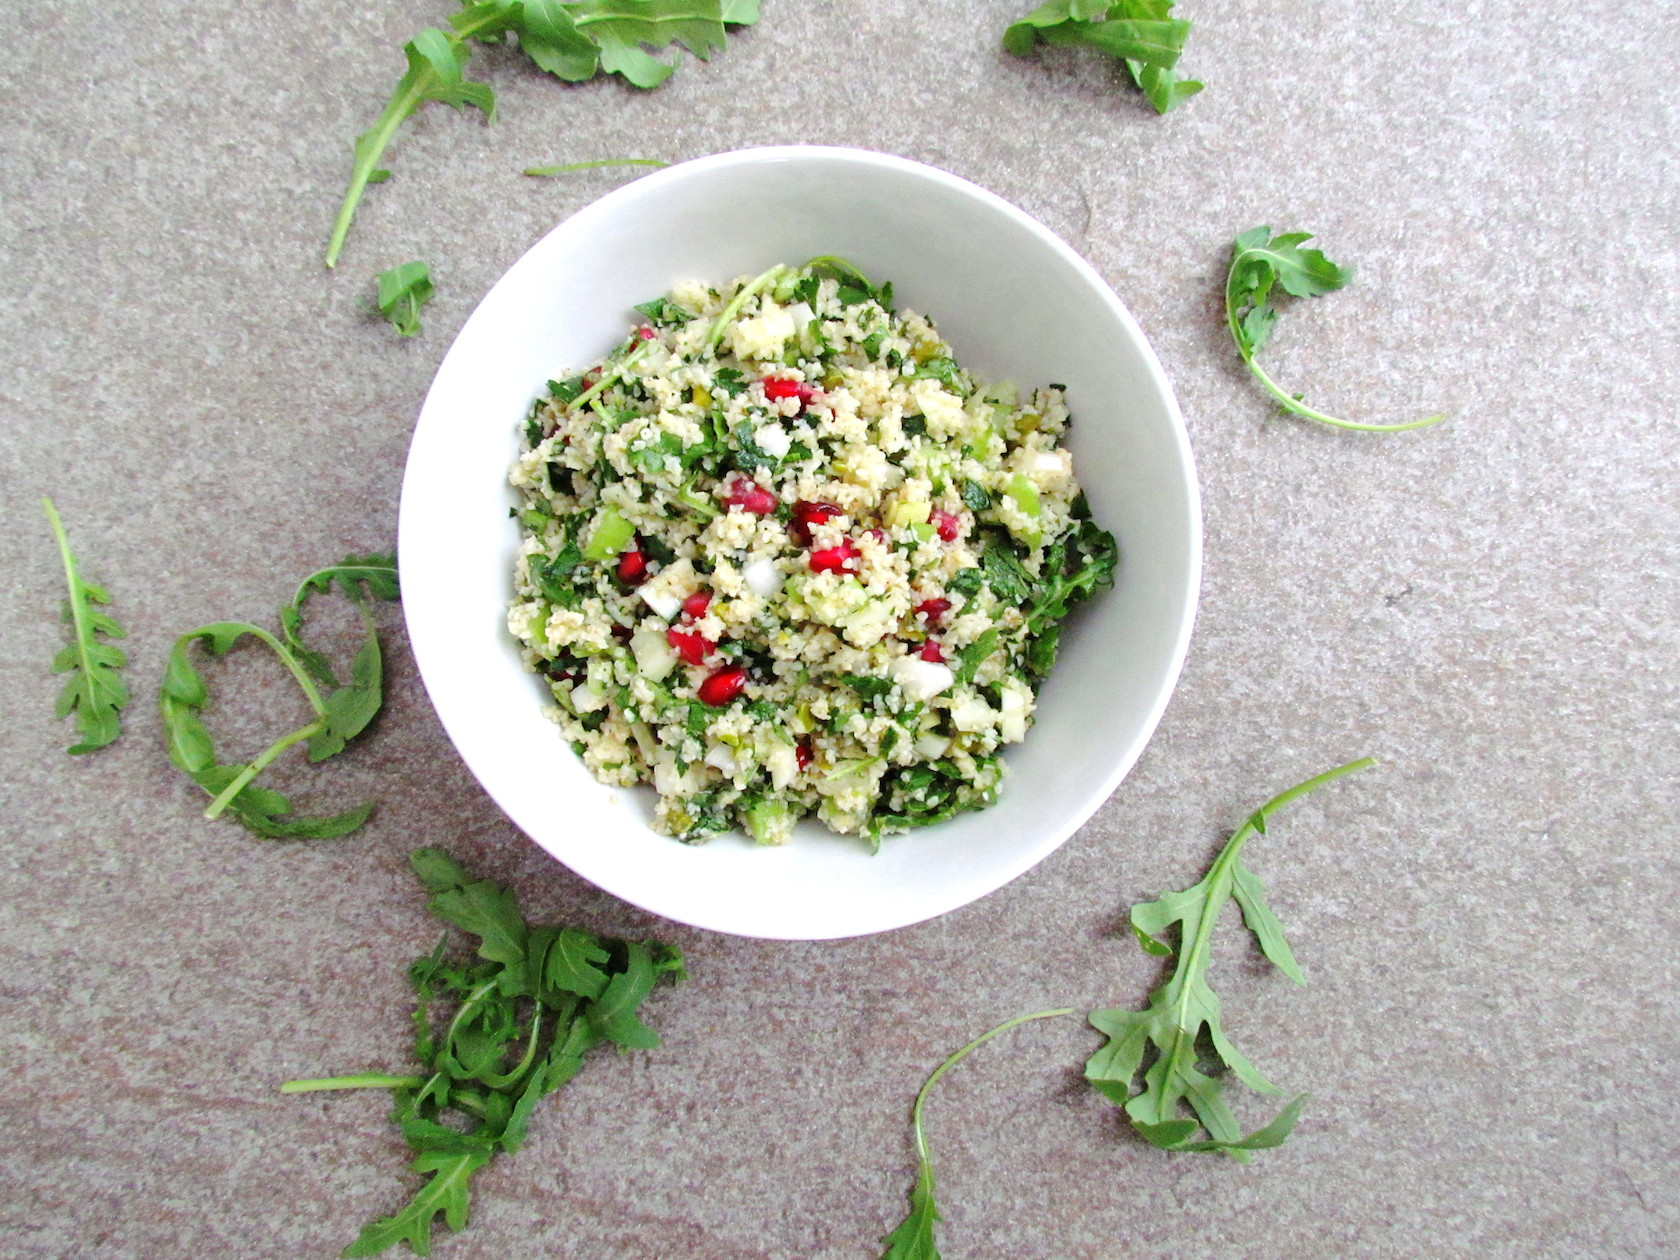 bulgur salad with herbs, pomegranate and pistachios | Savormania